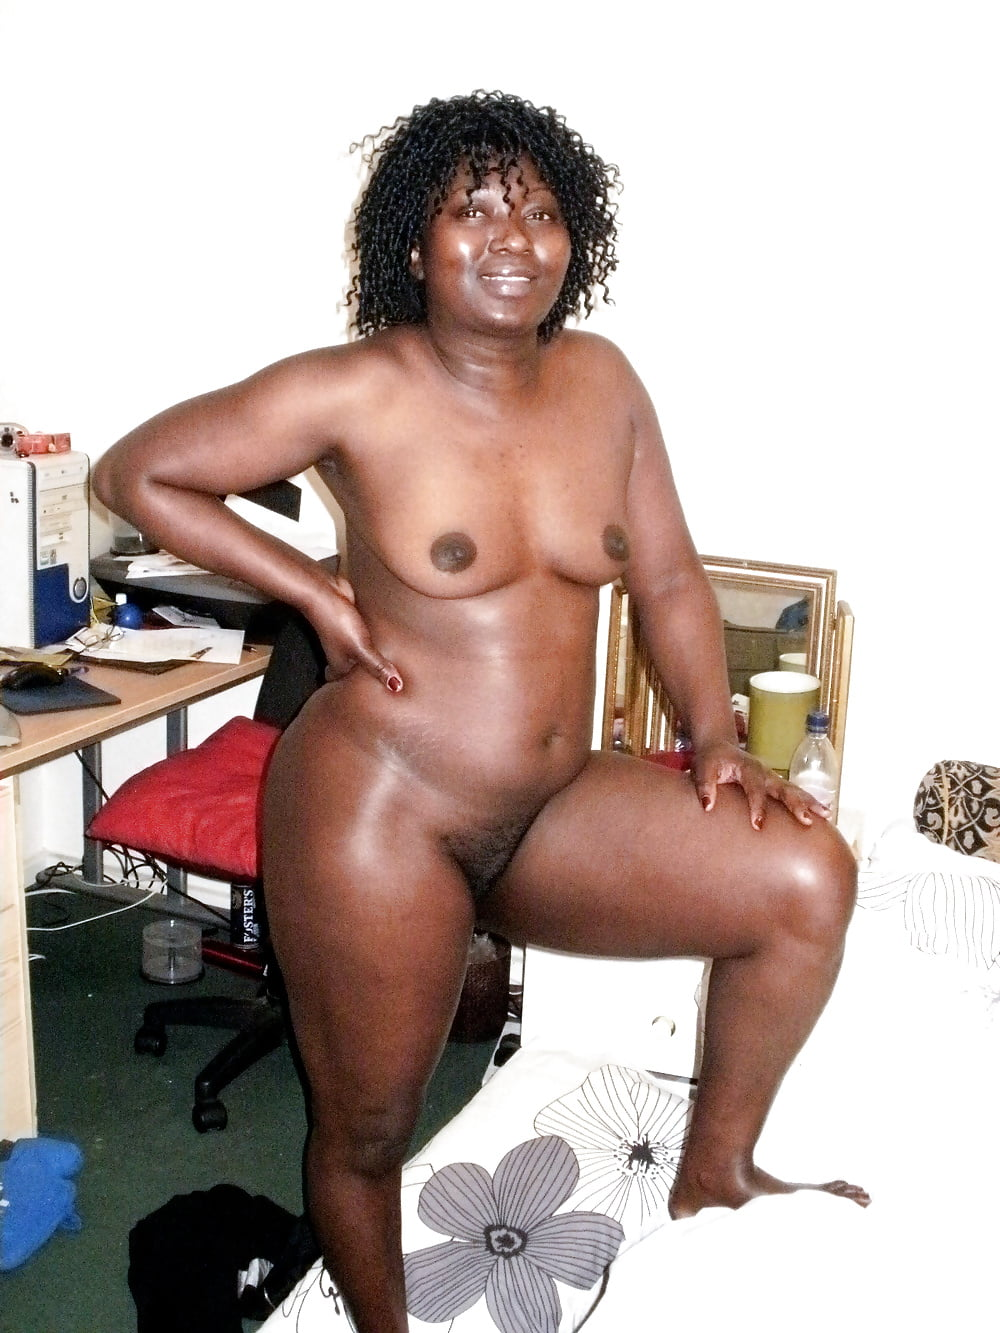 ebony-milf-posing-nude-girl-eating-girl-out-picture-porn